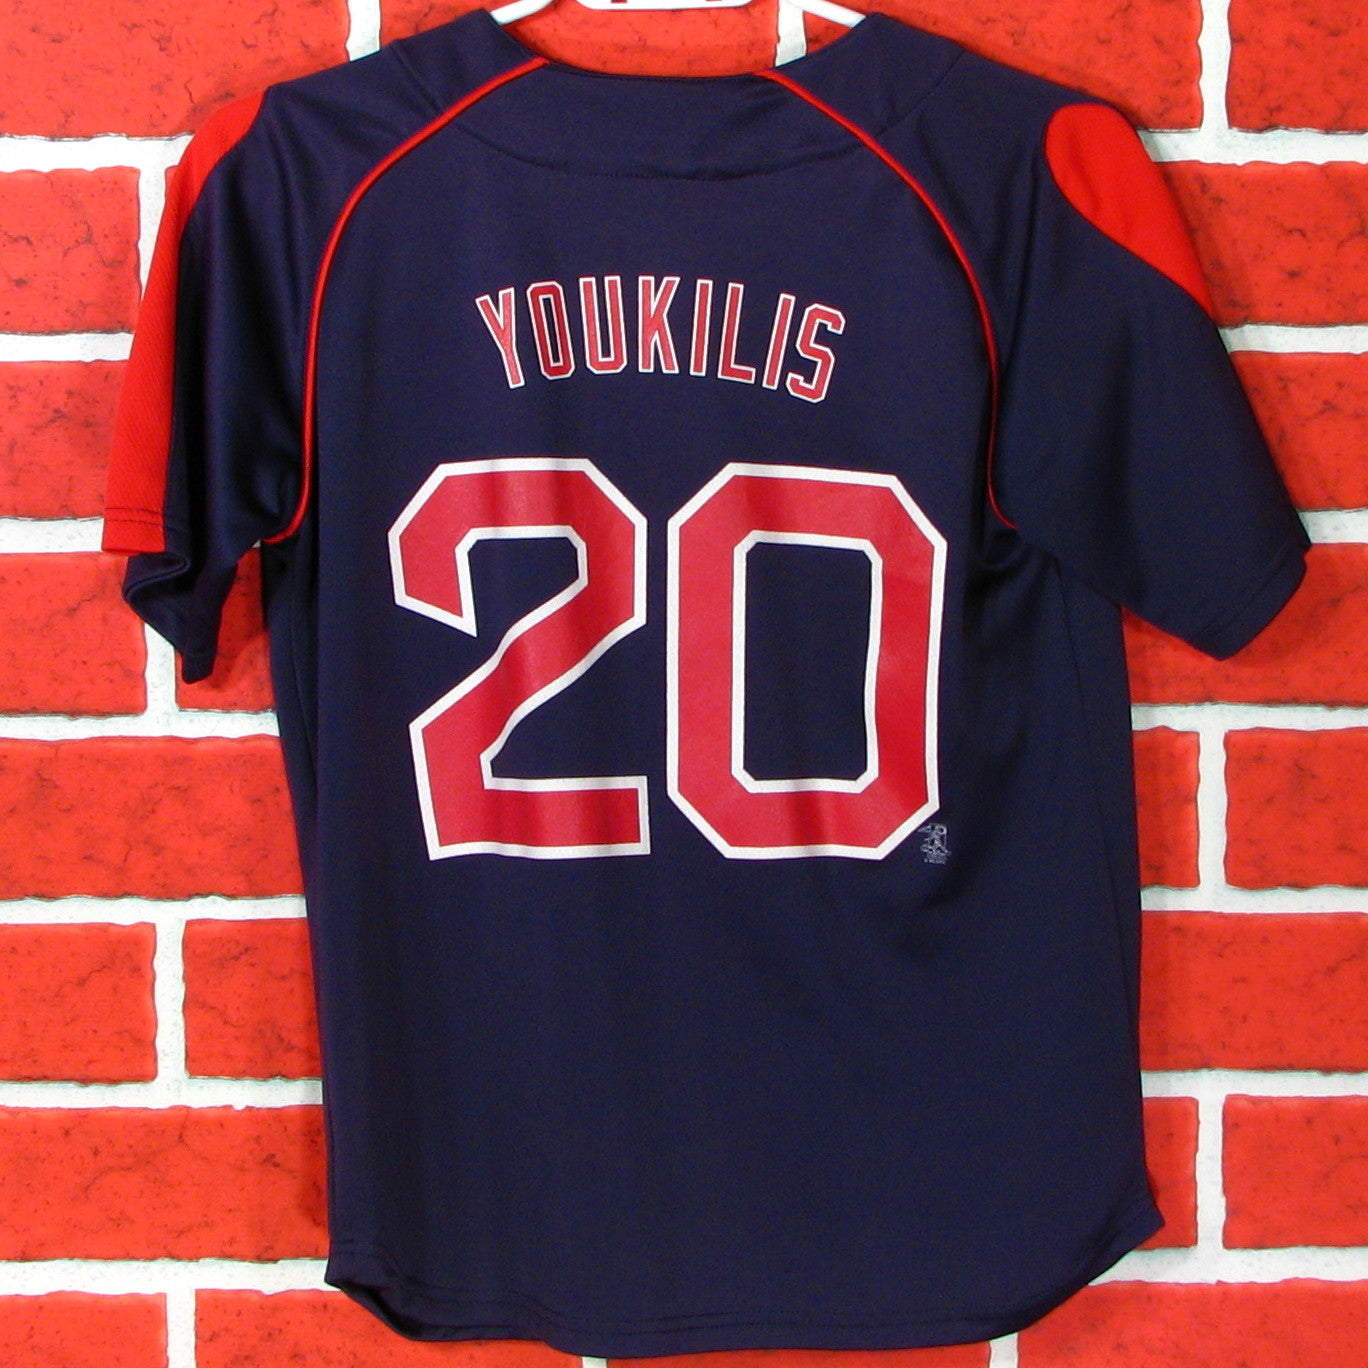 Boston Red Sox Youkilis # 20 Jersey Youth